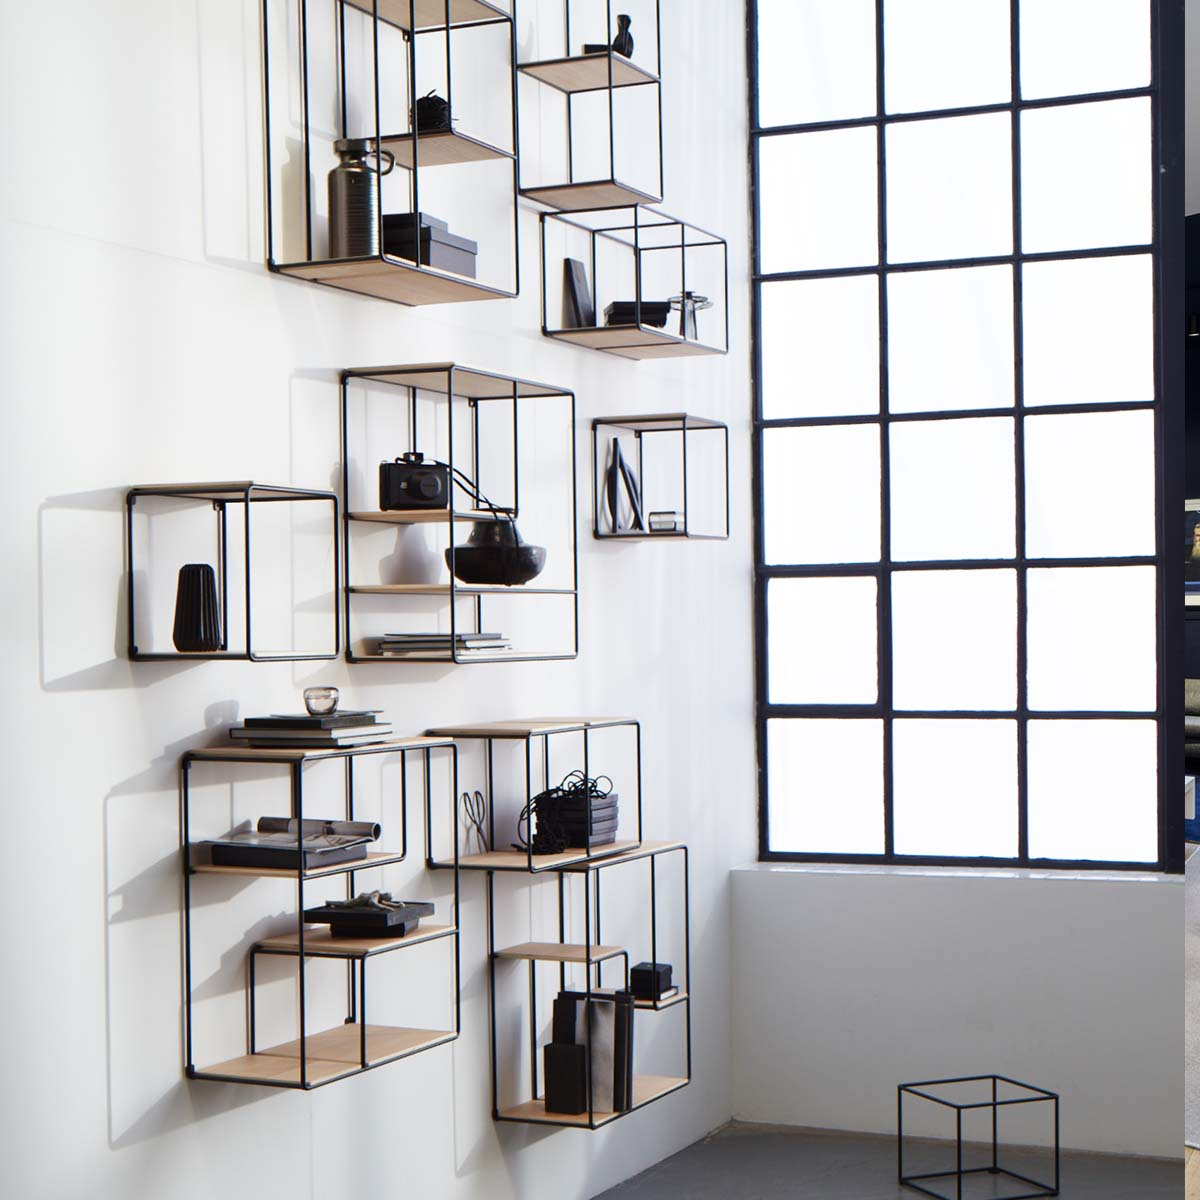 Anywhere modular shelving system